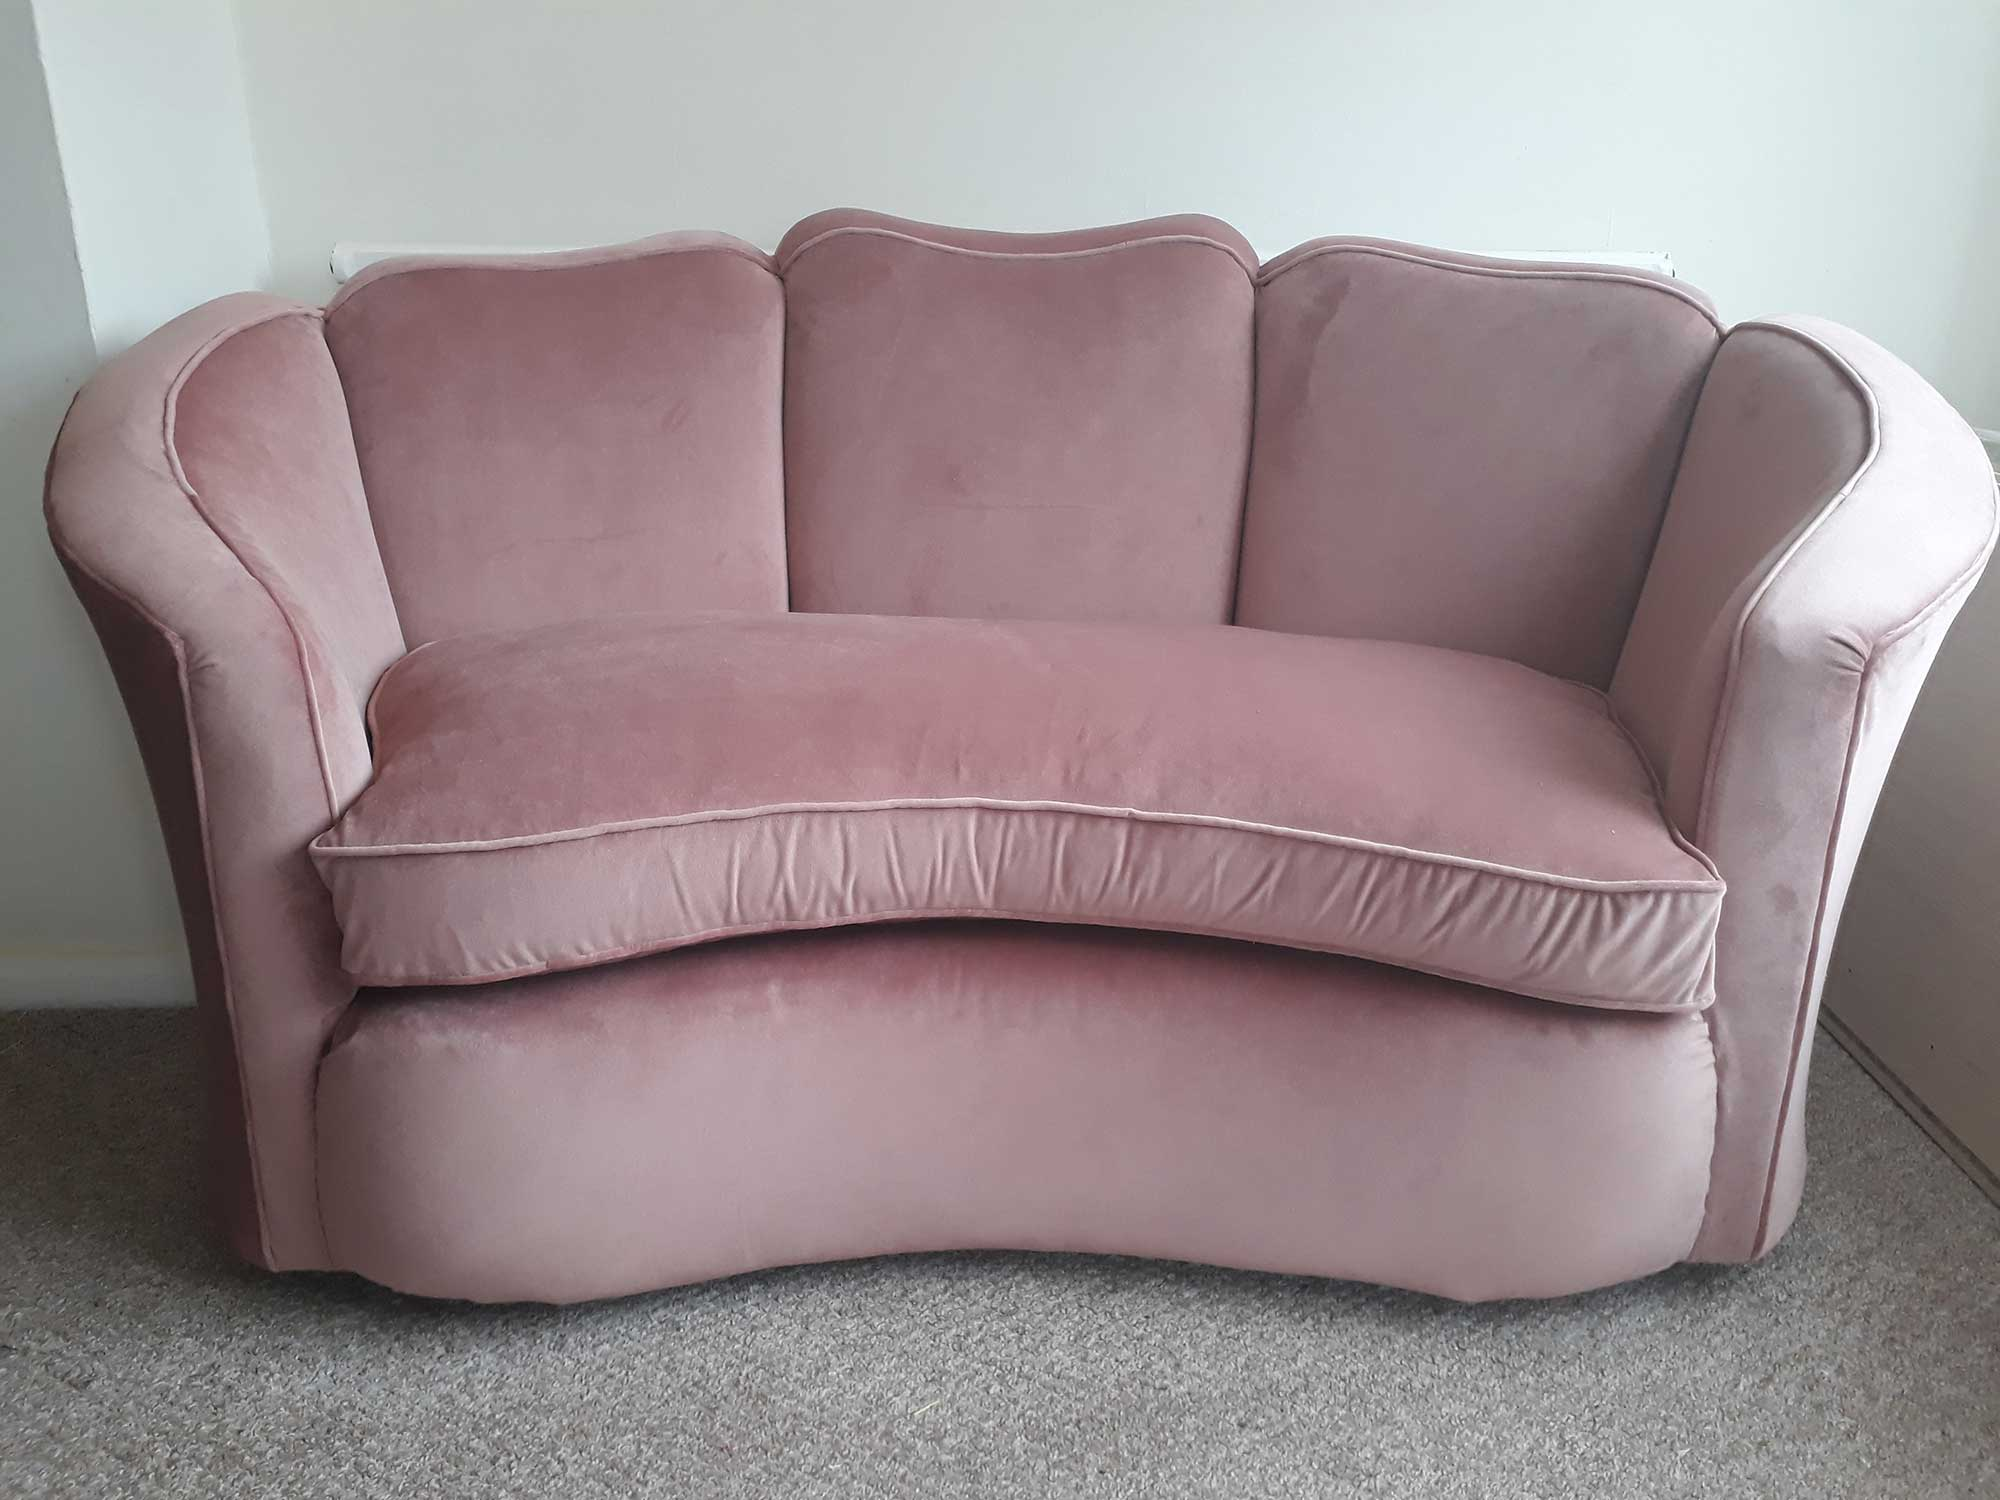 Re-Covered Kidney Sofa